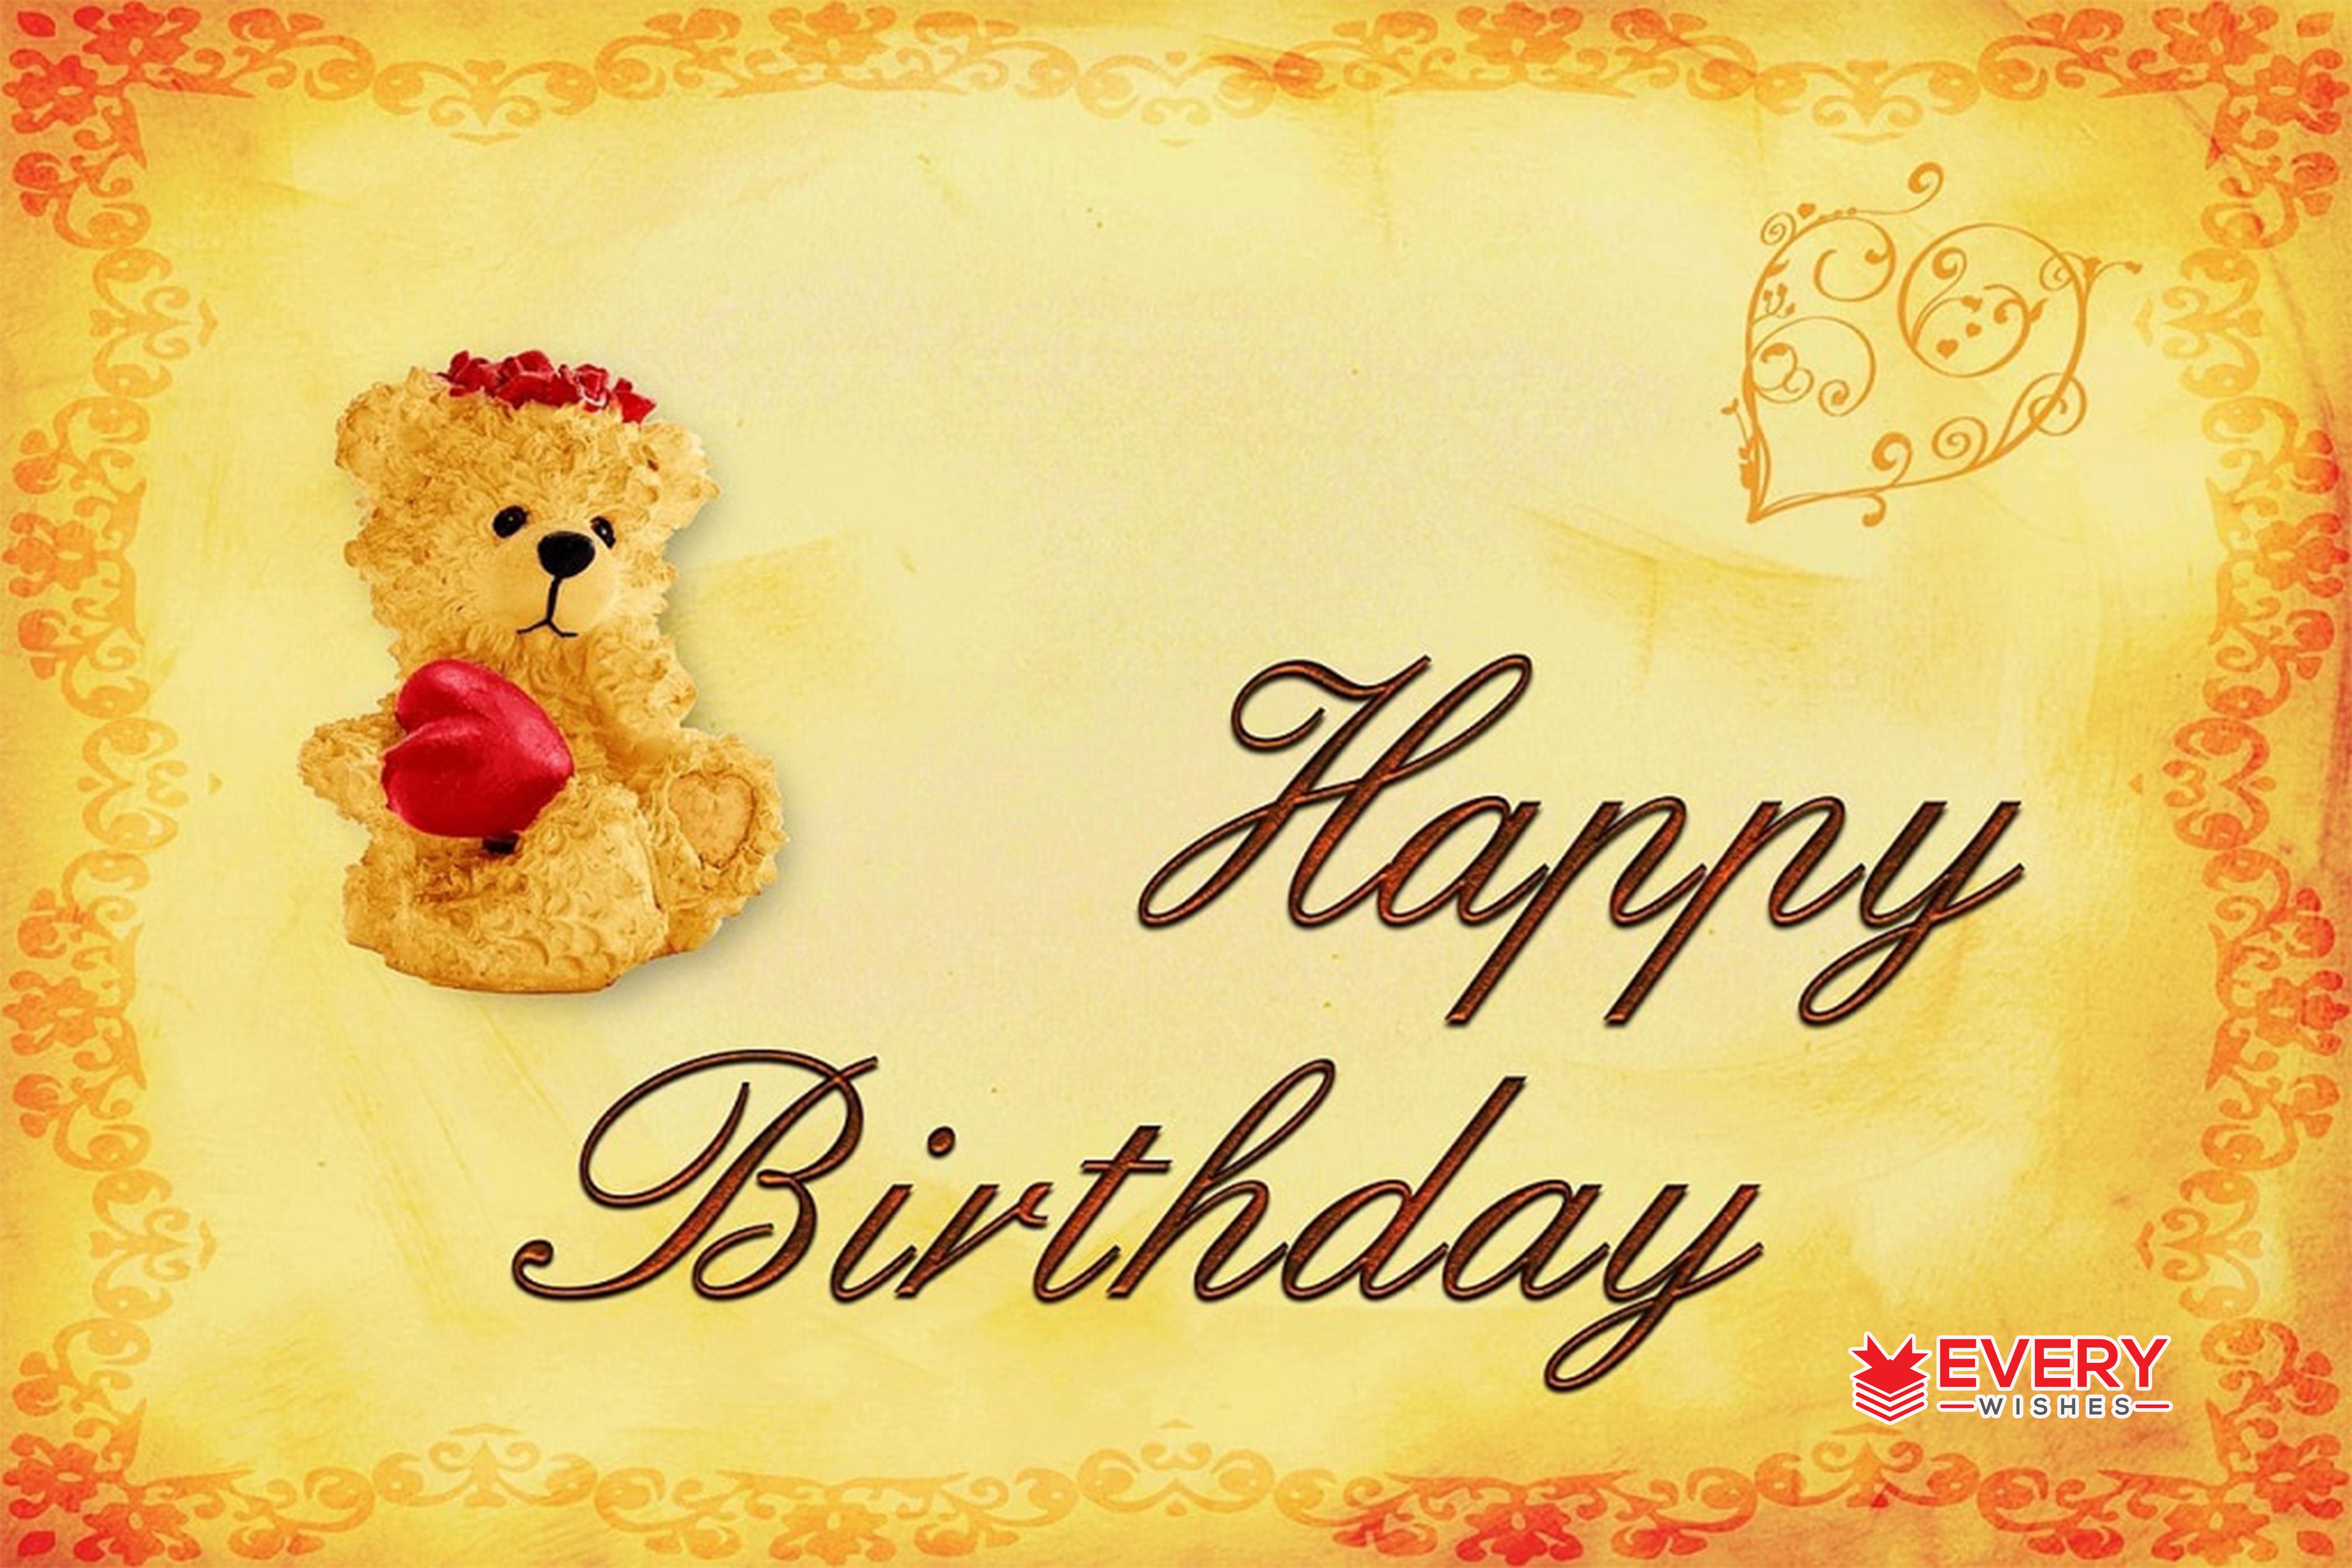 best birthday greeting cards ; featured-image-4-1